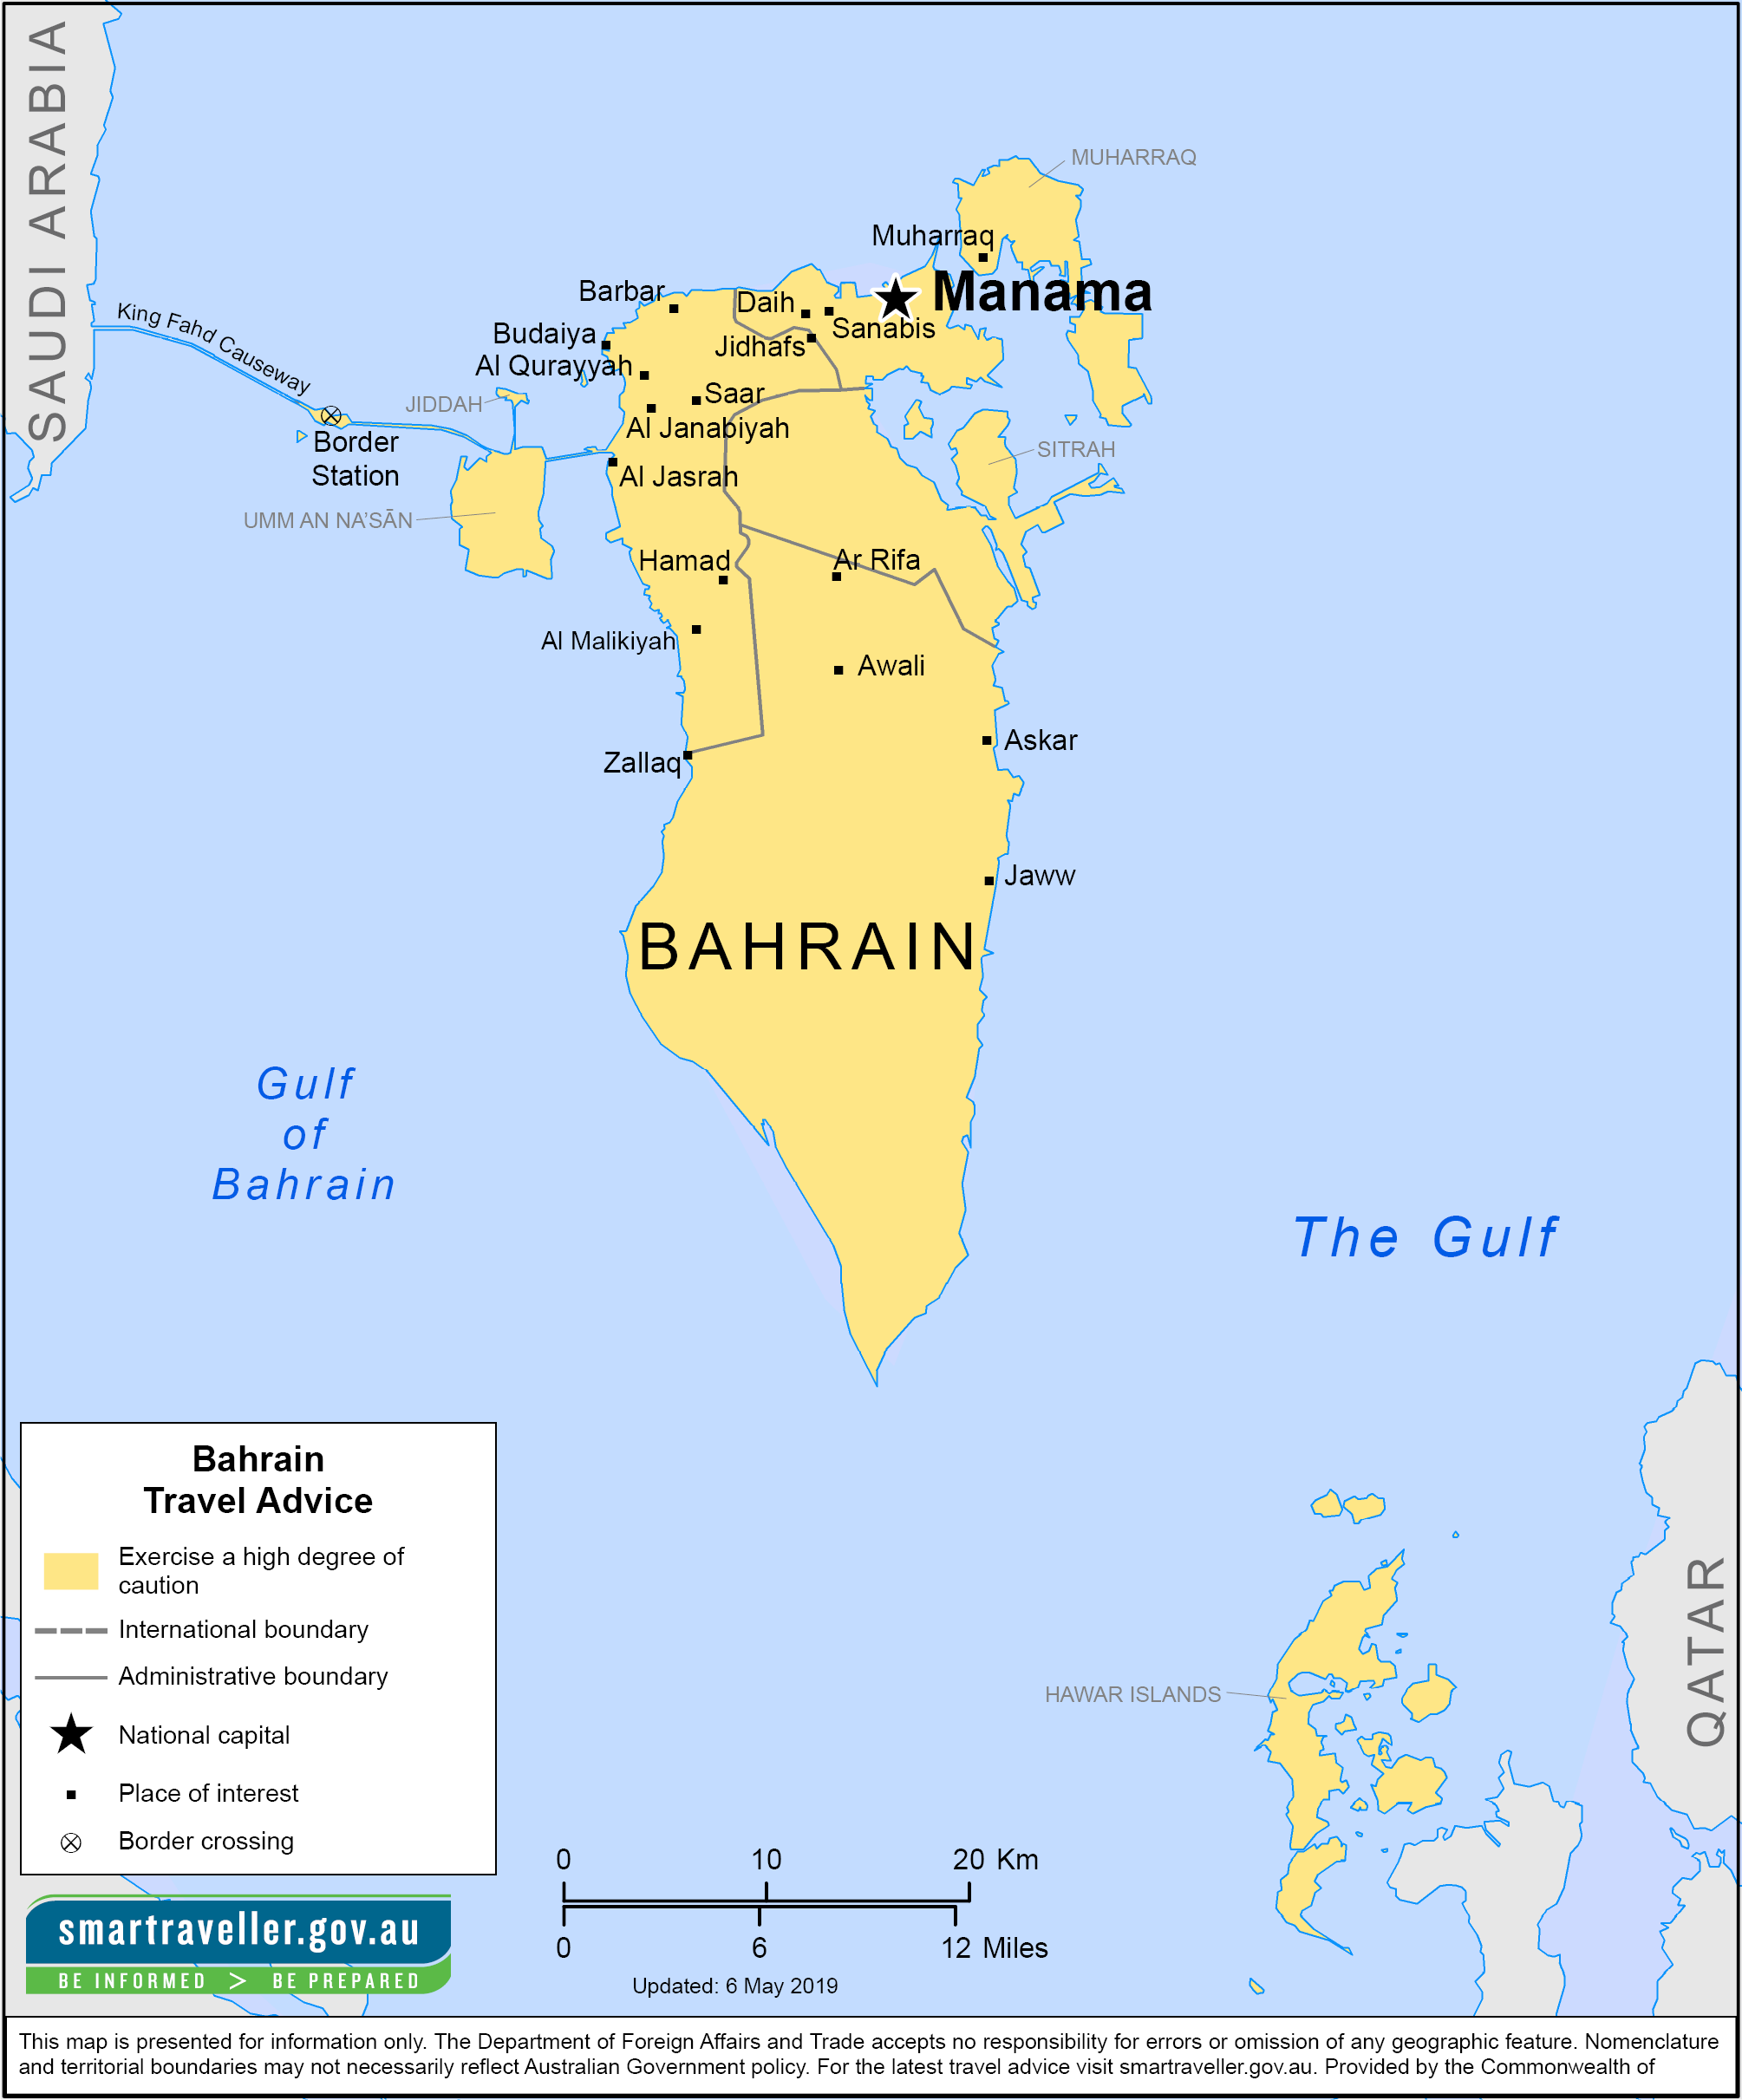 Bahrain-Travel-Health-Insurance